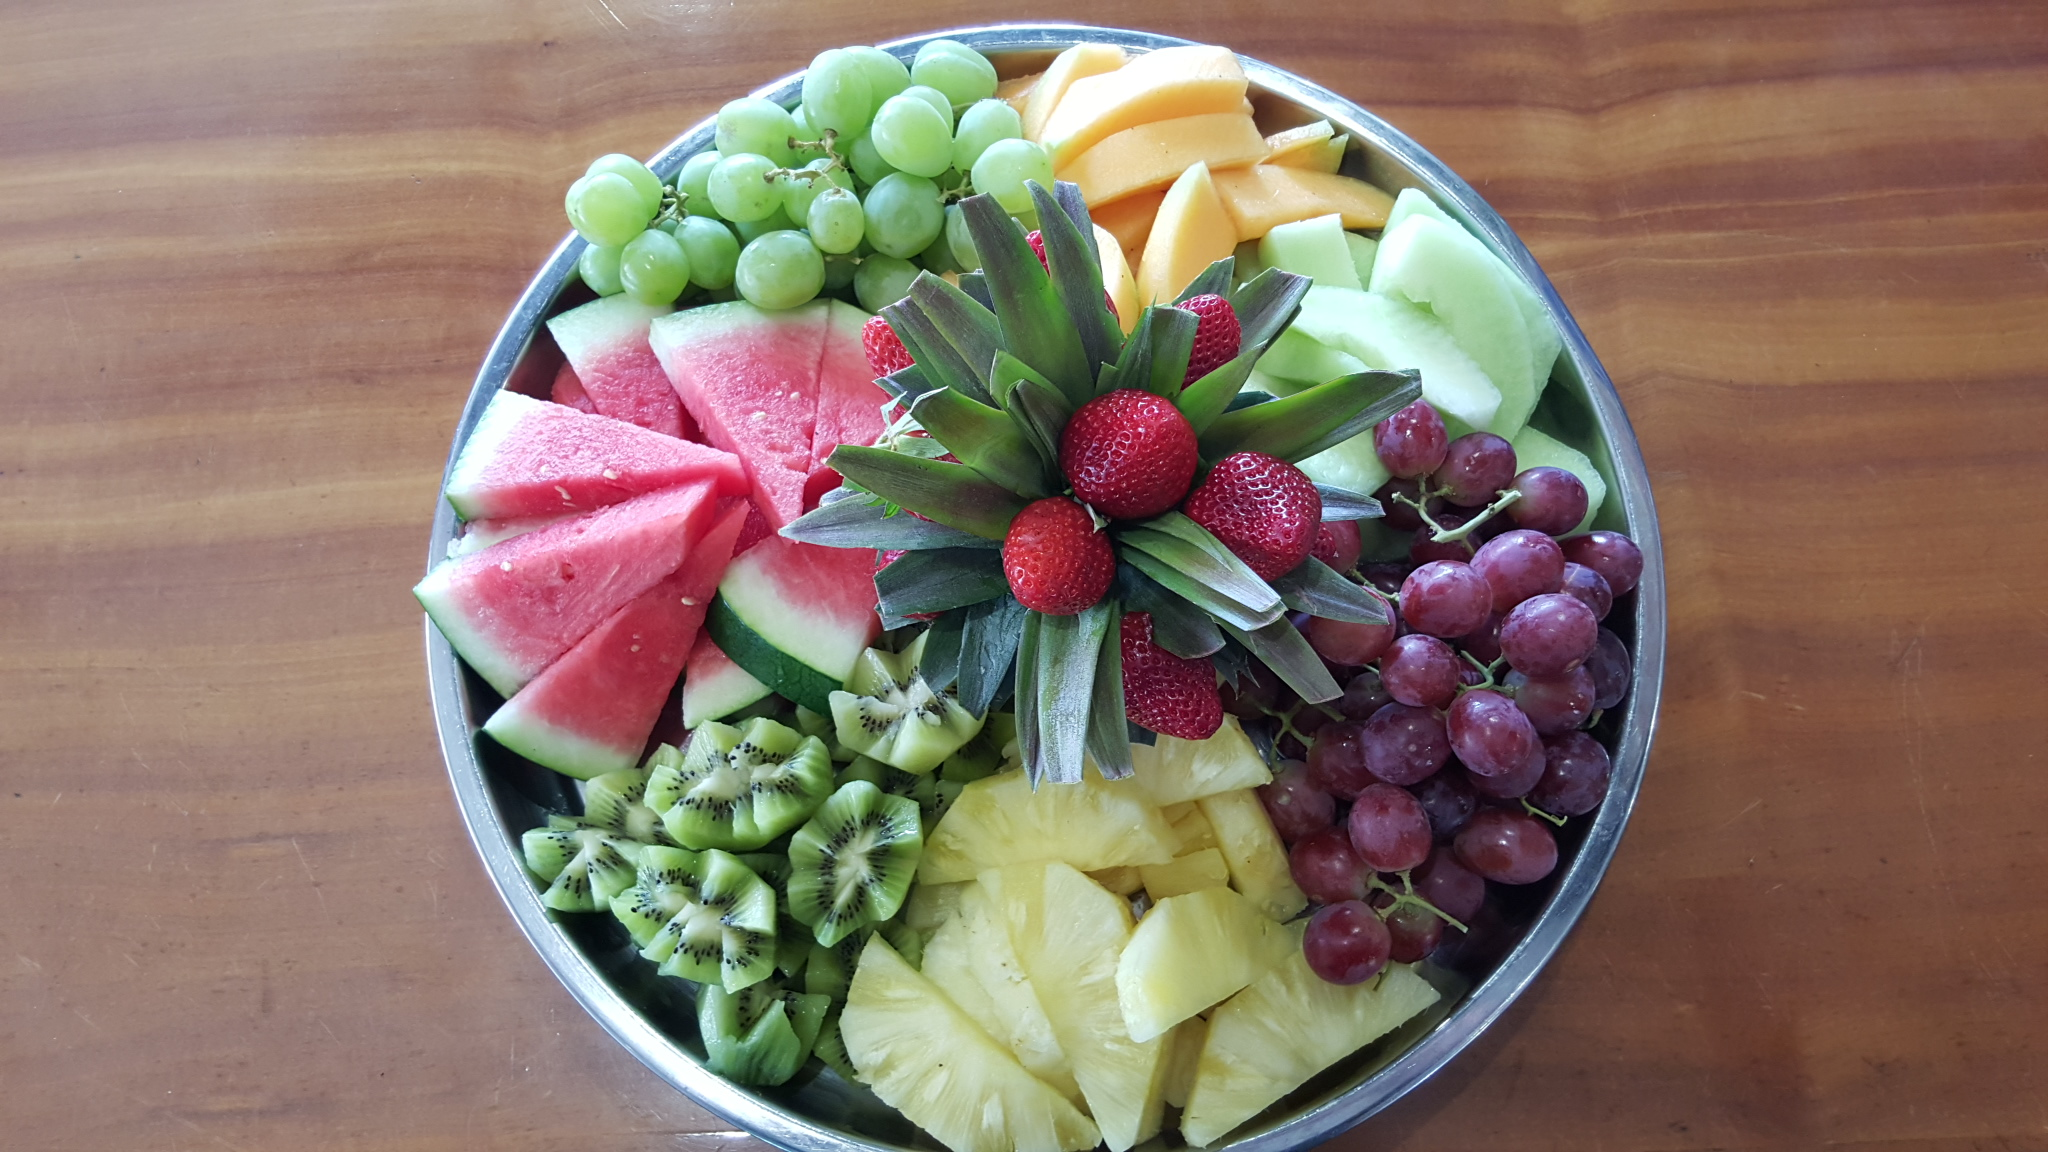 Optional Extra - Deluxe Tropical Fruit Platter